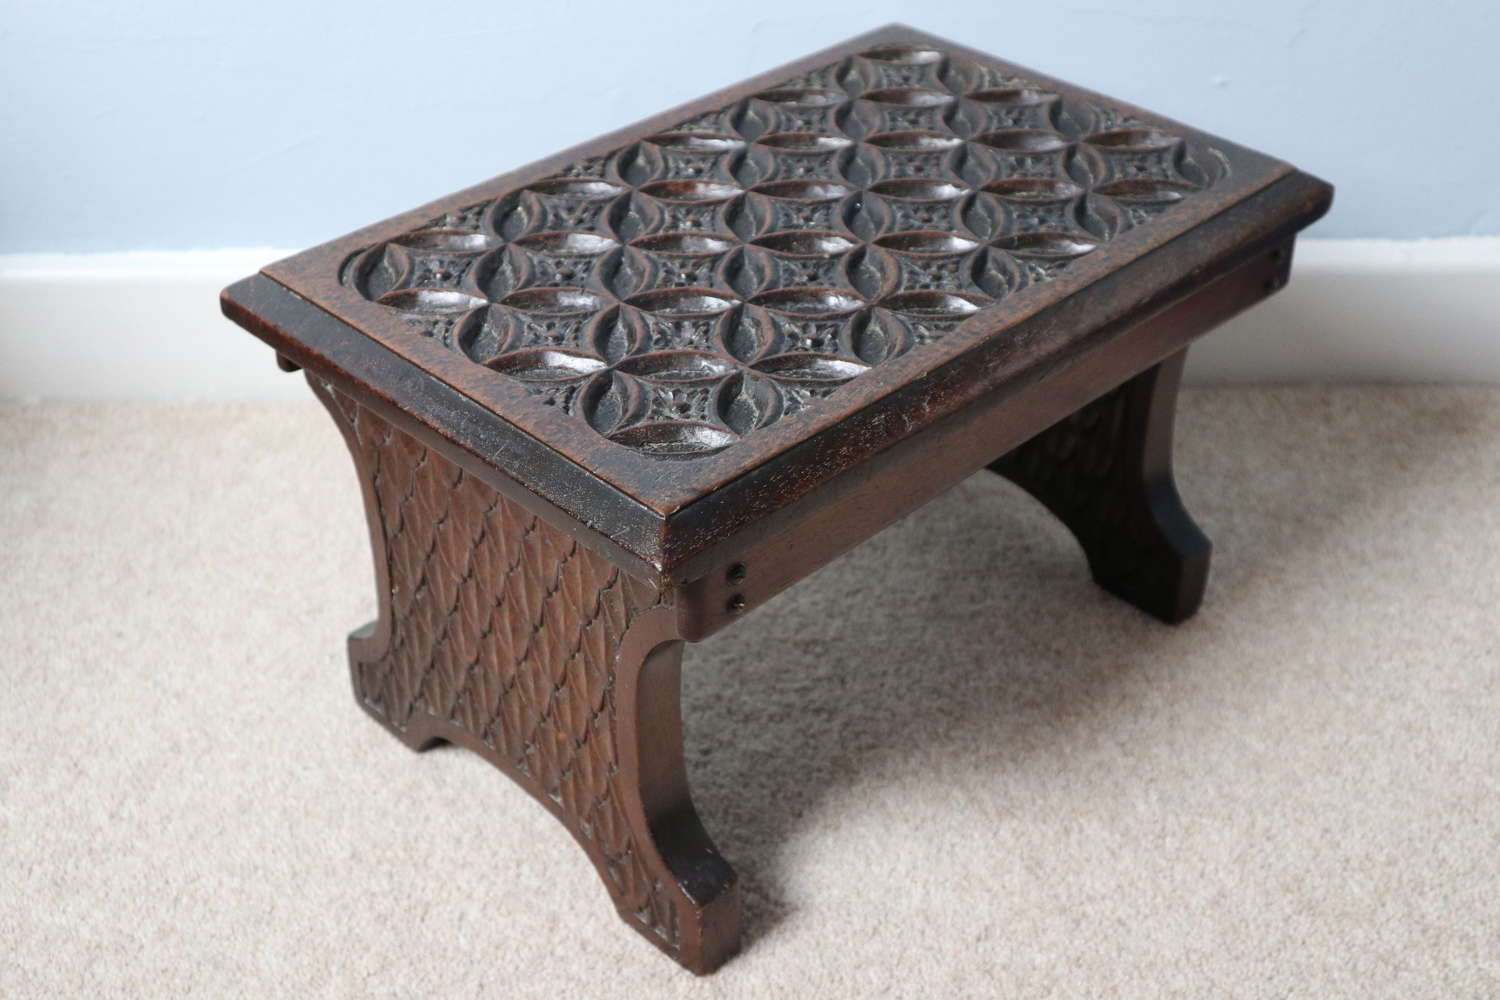 Victorian Gothic revival carved mahogany footstool c.1860